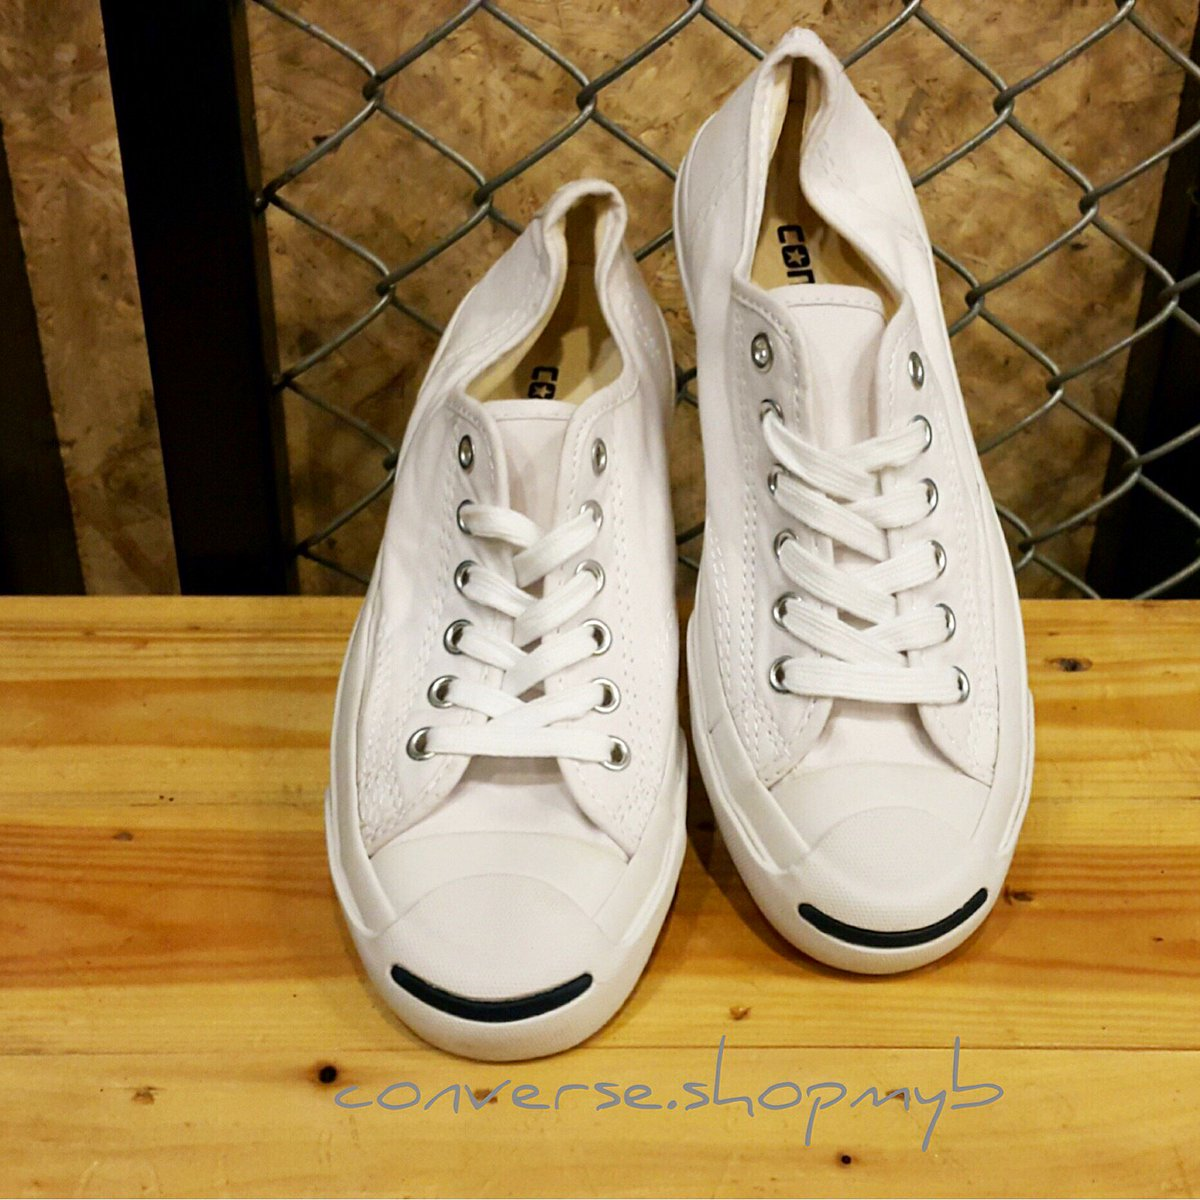 5bc05a8c74119e Acquistare converse jack purcell timeline made in japan